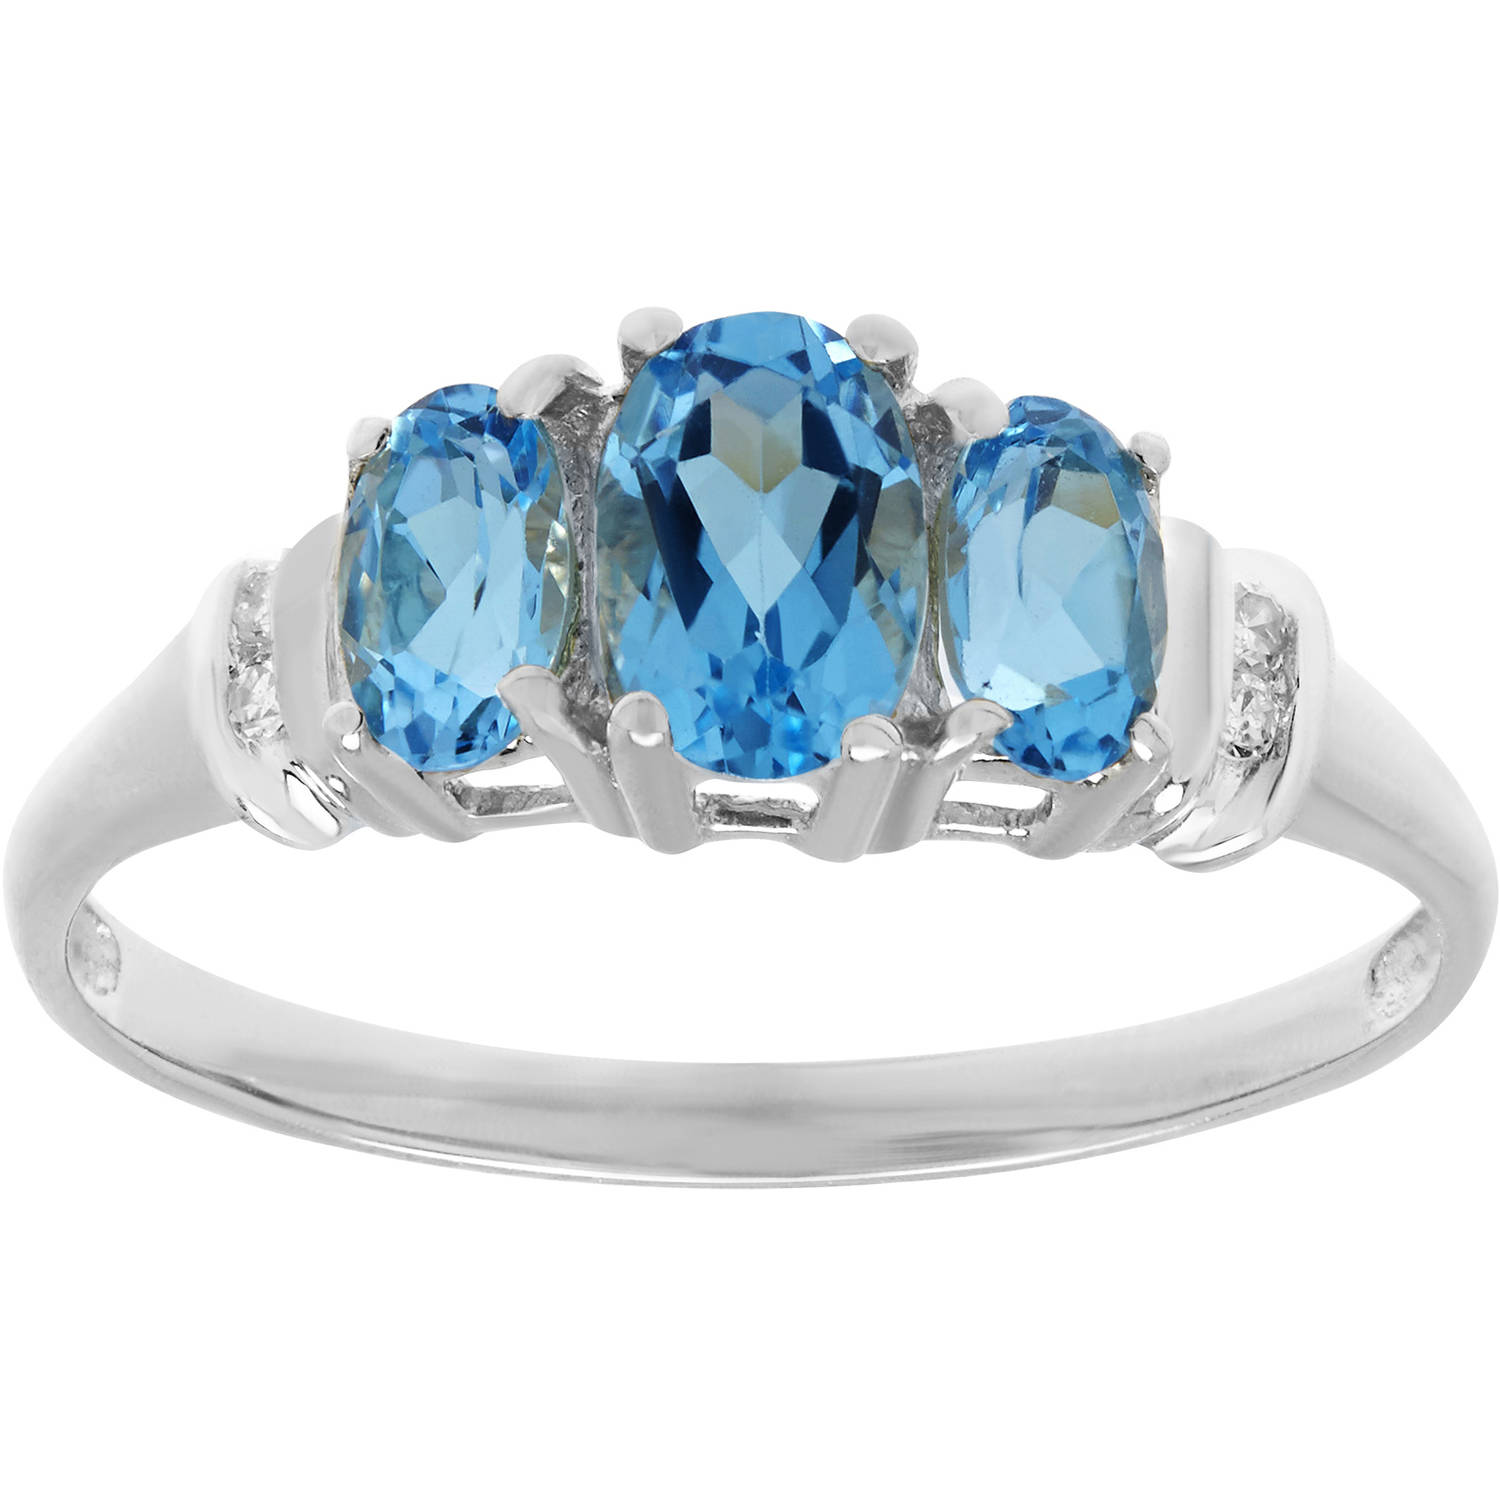 Simply Gold Gemstone Threestone Oval-Cut Blue Topaz with Diamond Accent 10kt White Gold Ring, Size 7 by Richline Group Inc